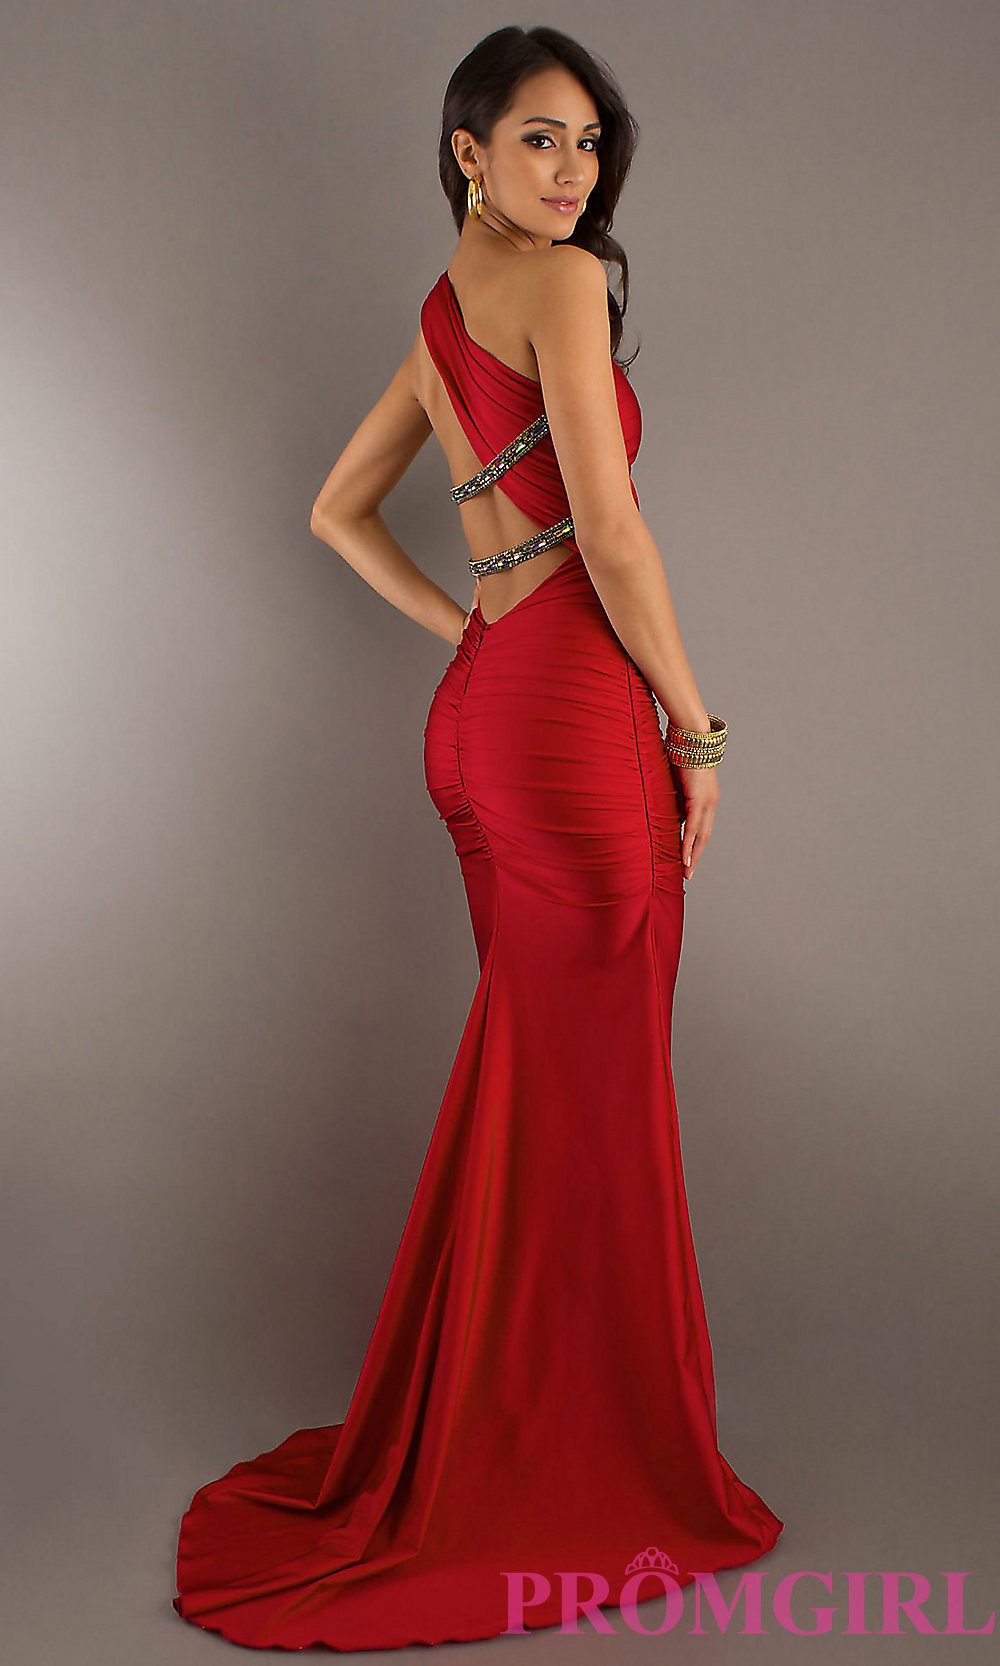 Sexy Designer Cocktail Dresses & Elegant And Beautiful ...